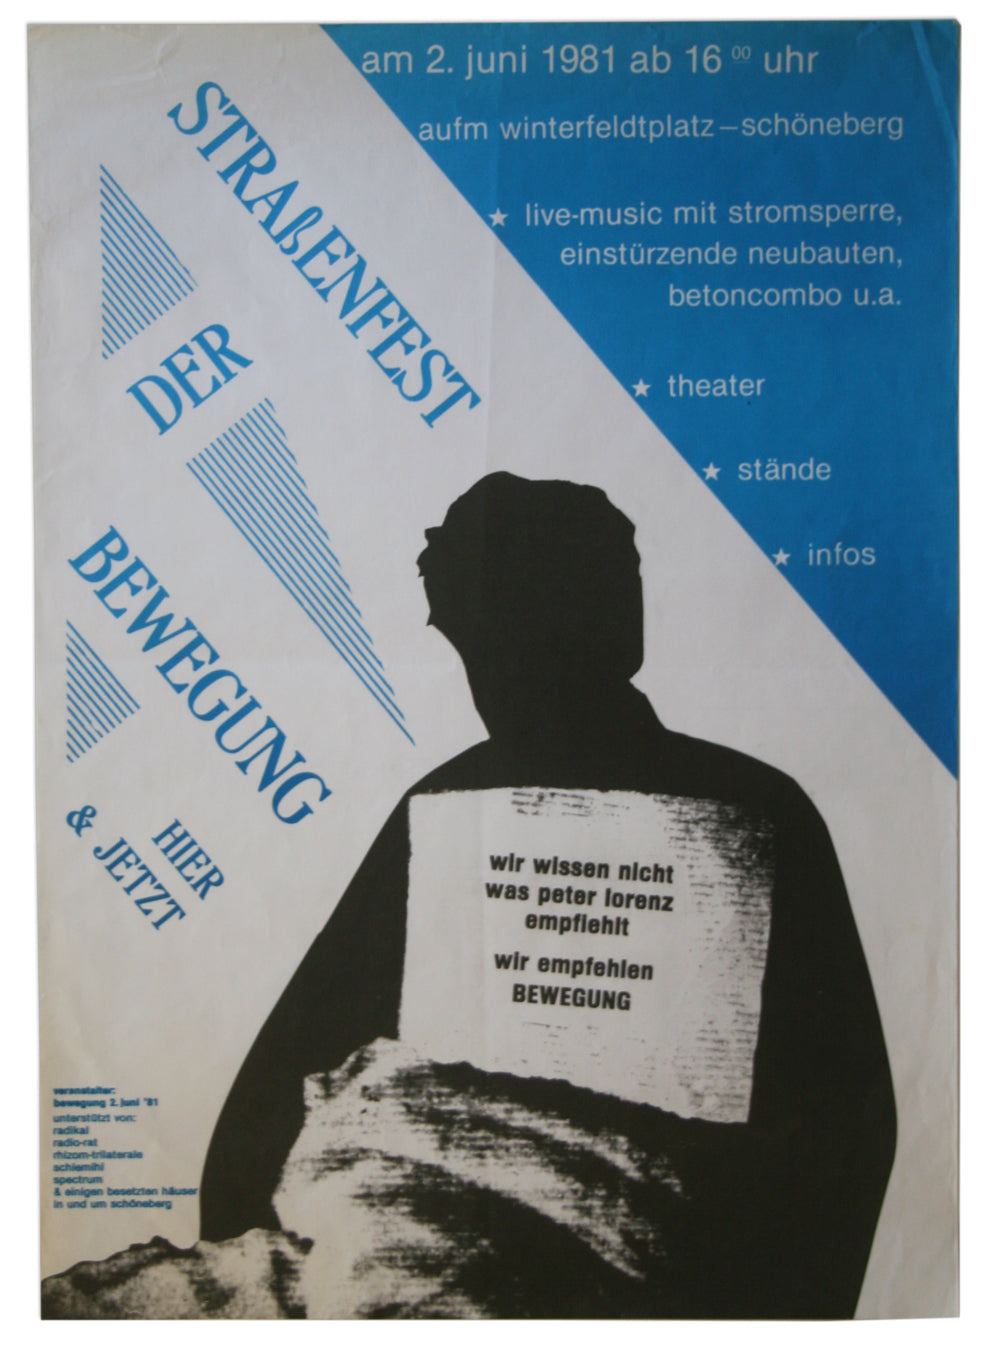 [EINSTUERZENDE NEUBAUTEN; ANARCHISM] STREET FESTIVAL FOR THE 2 JUNE MOVEMENT (HERE AND NOW)—POSTER—JUNE 2, 1981, SCHOENEBERG, BERLIN